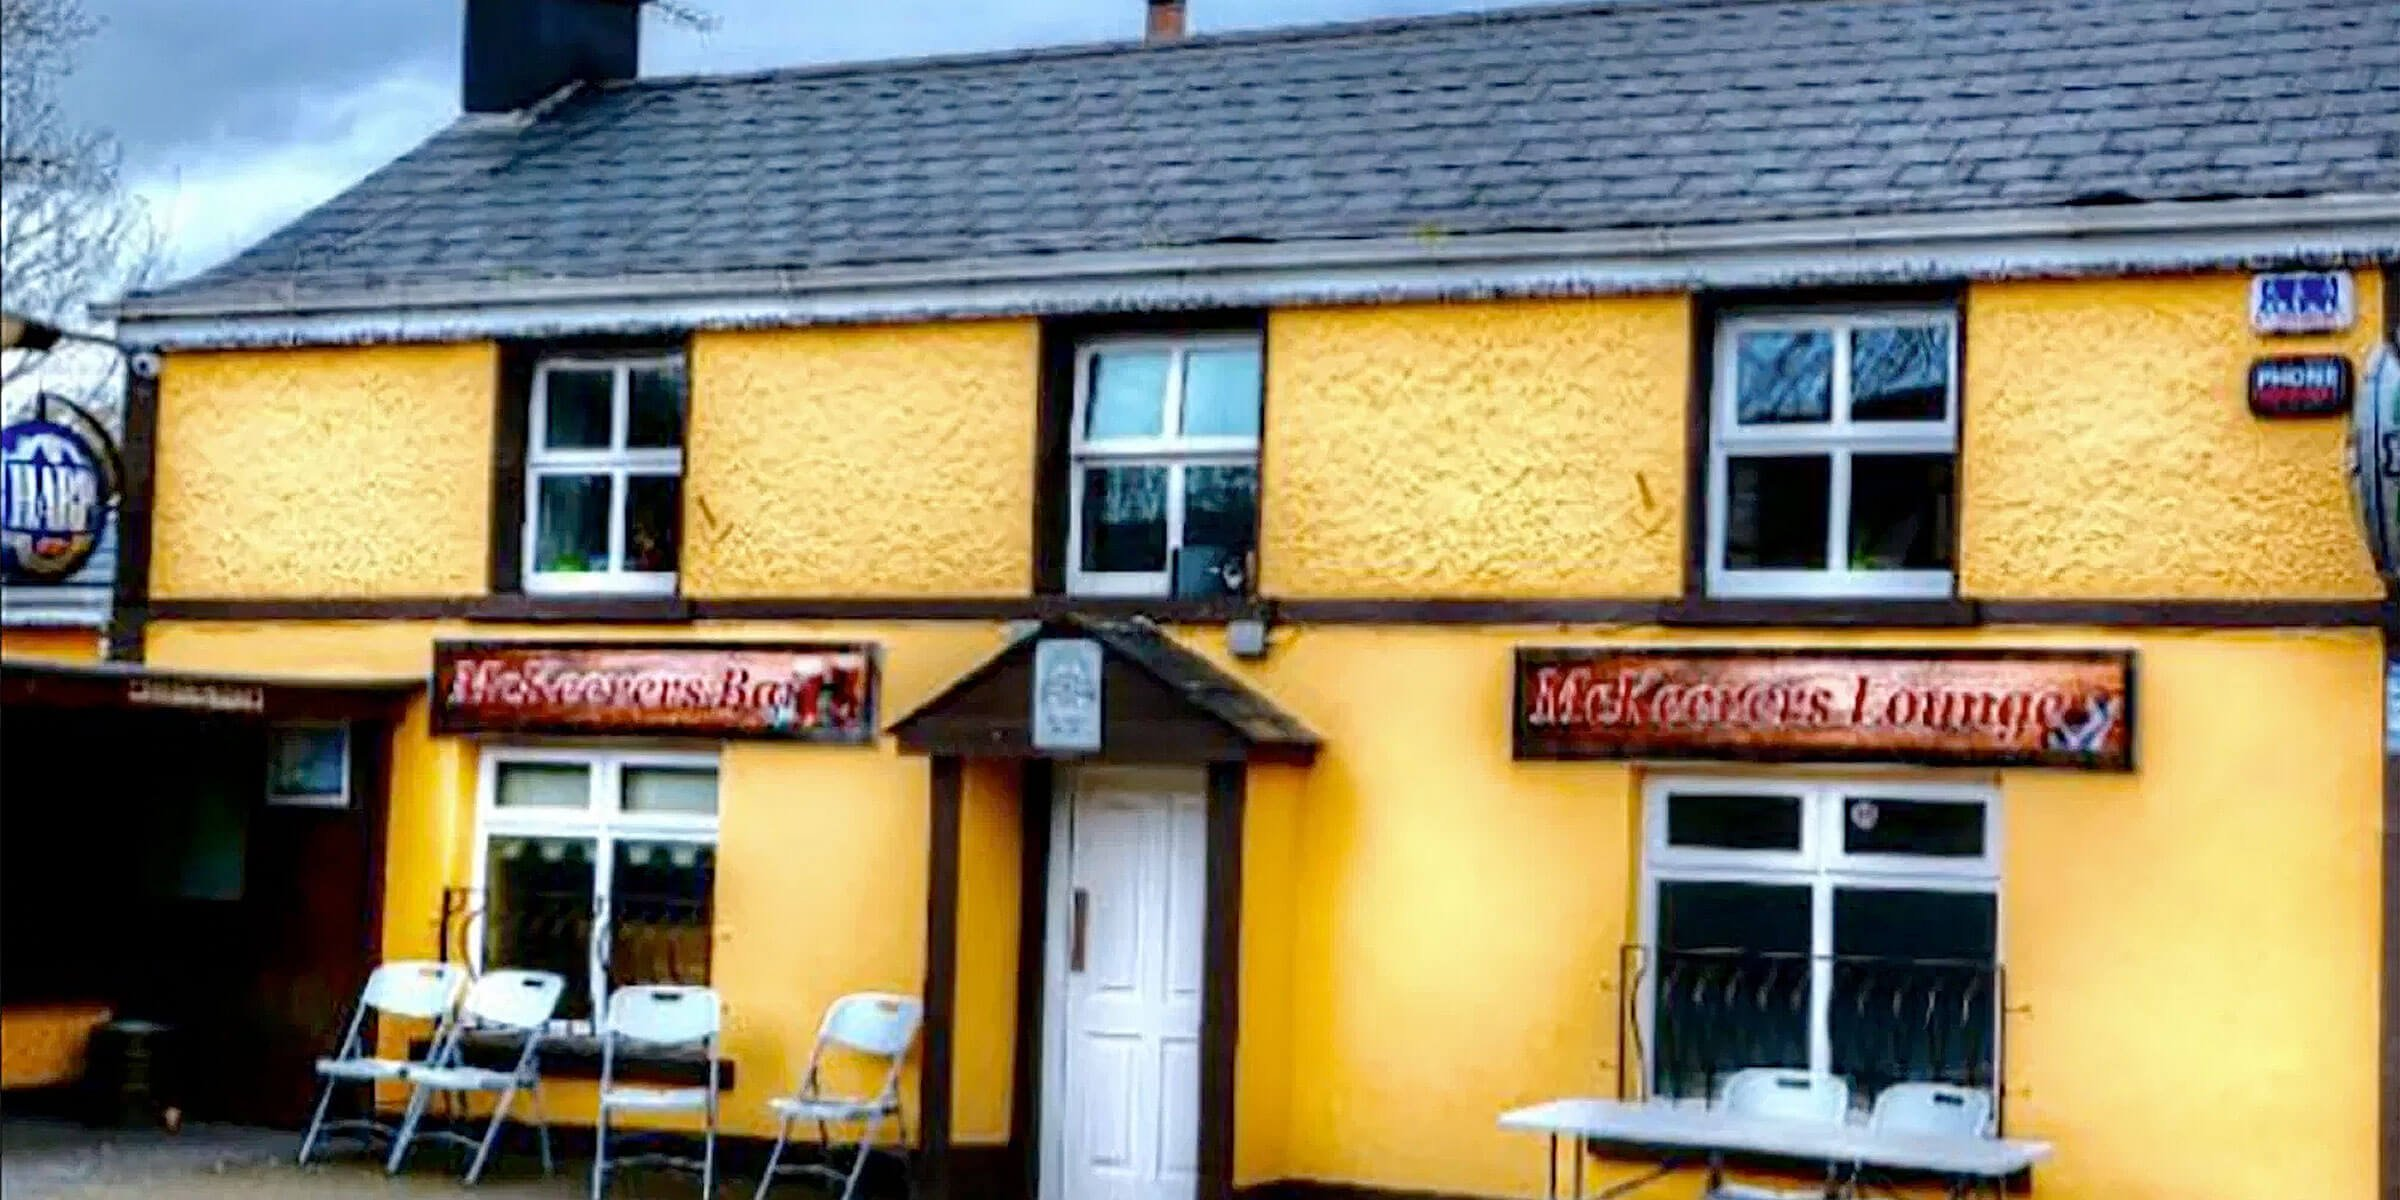 McKeever's Bar and Lounge in Ireland is now flying beer, wine, and potato chips to patrons by drone to stay afloat during the coronavirus lockdown.